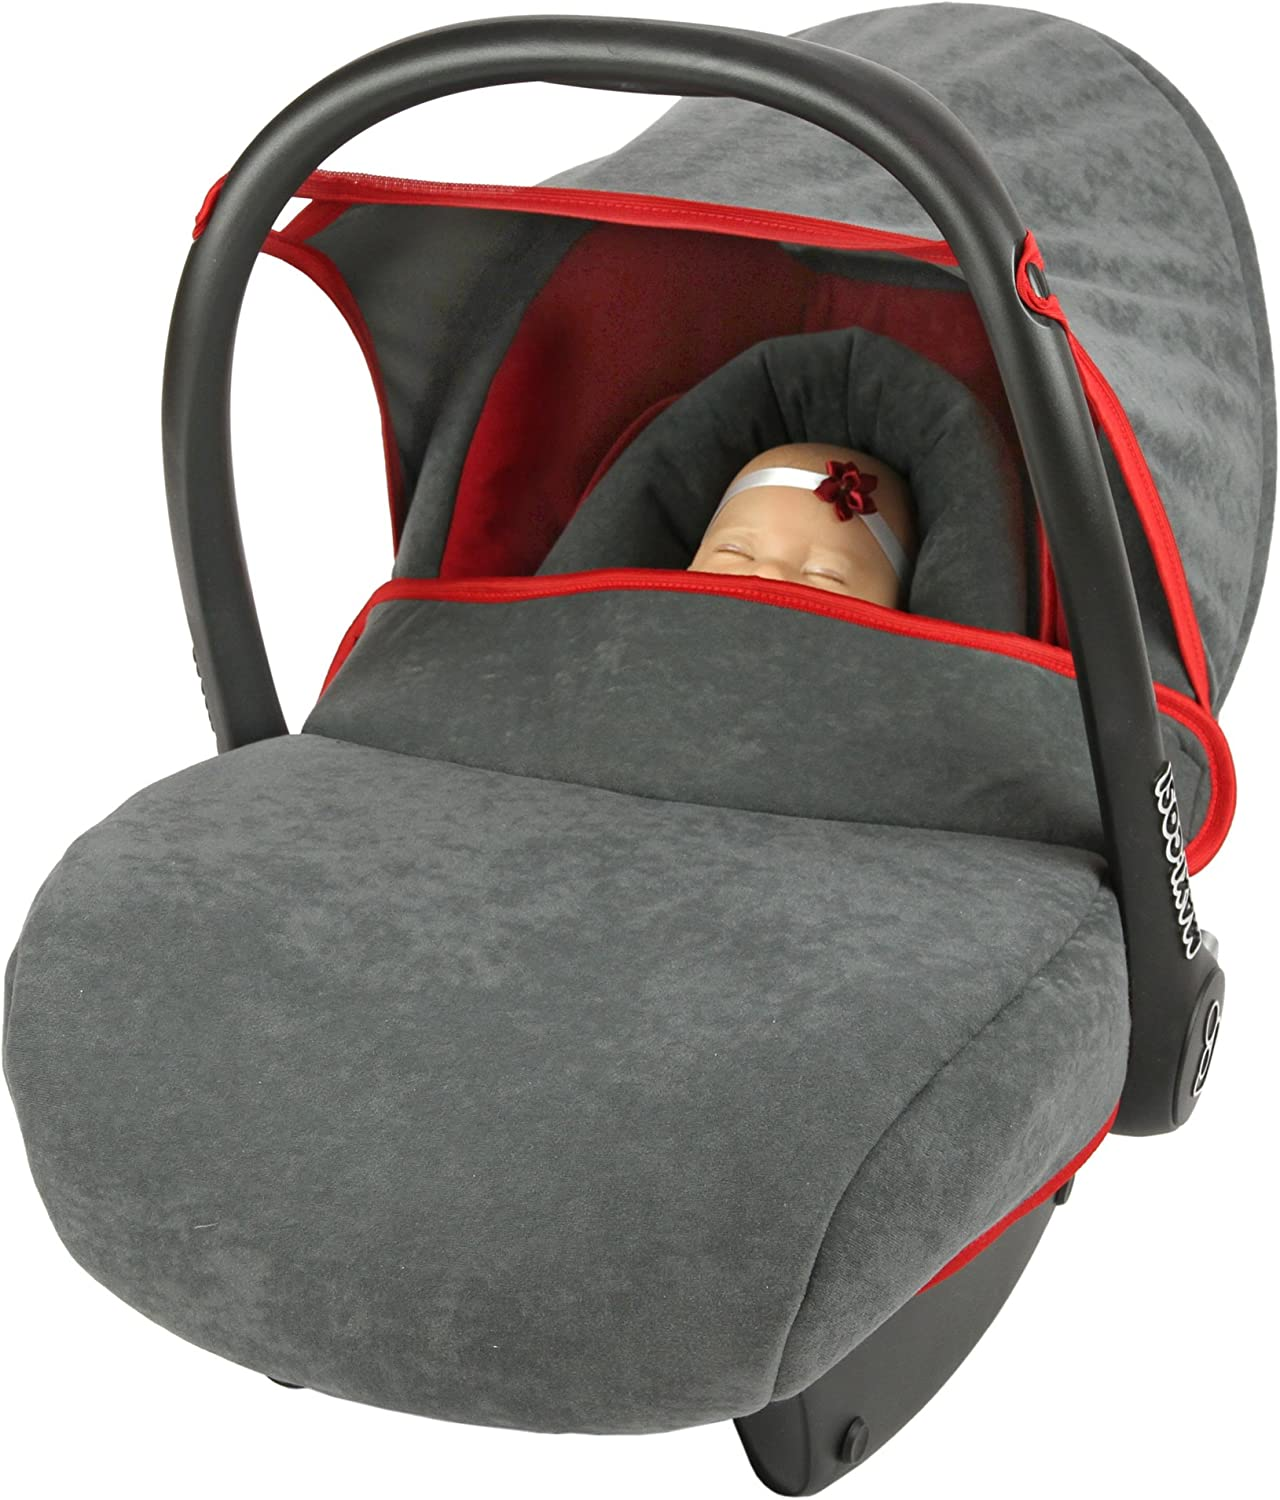 red//grey Replacement Seat Cover fits Maxi-Cosi CabrioFix Group 0+ Infant Carrier 6 piece SET